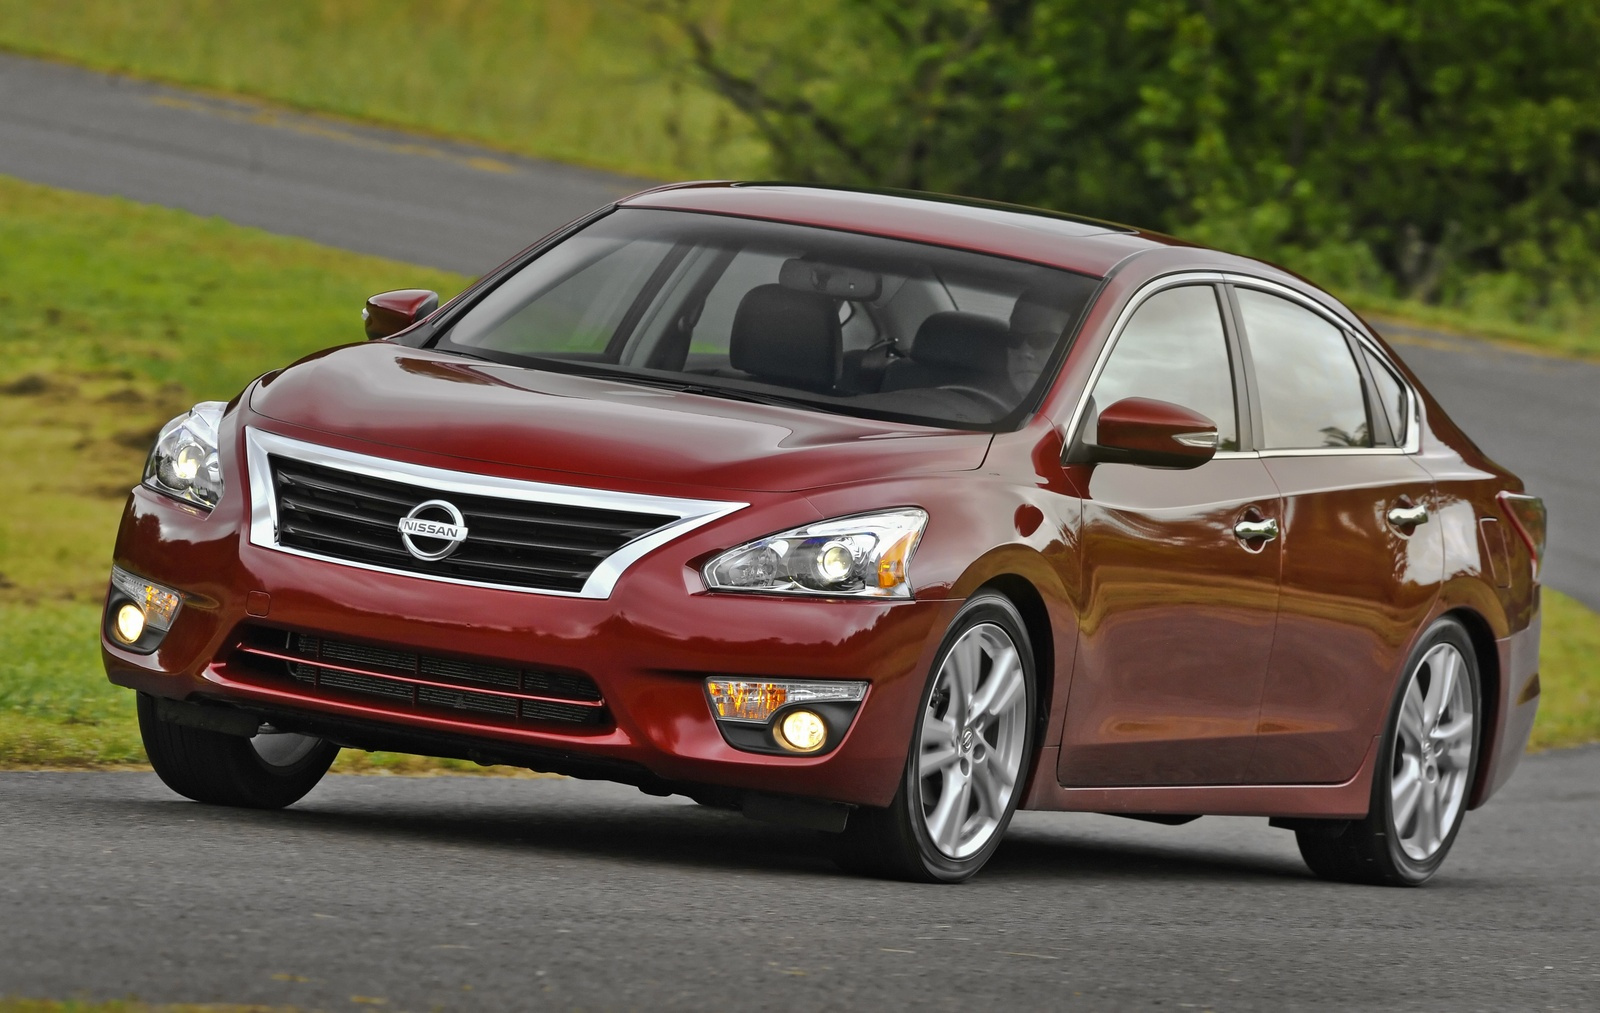 2014 Nissan Altima - Test Drive Review - CarGurus